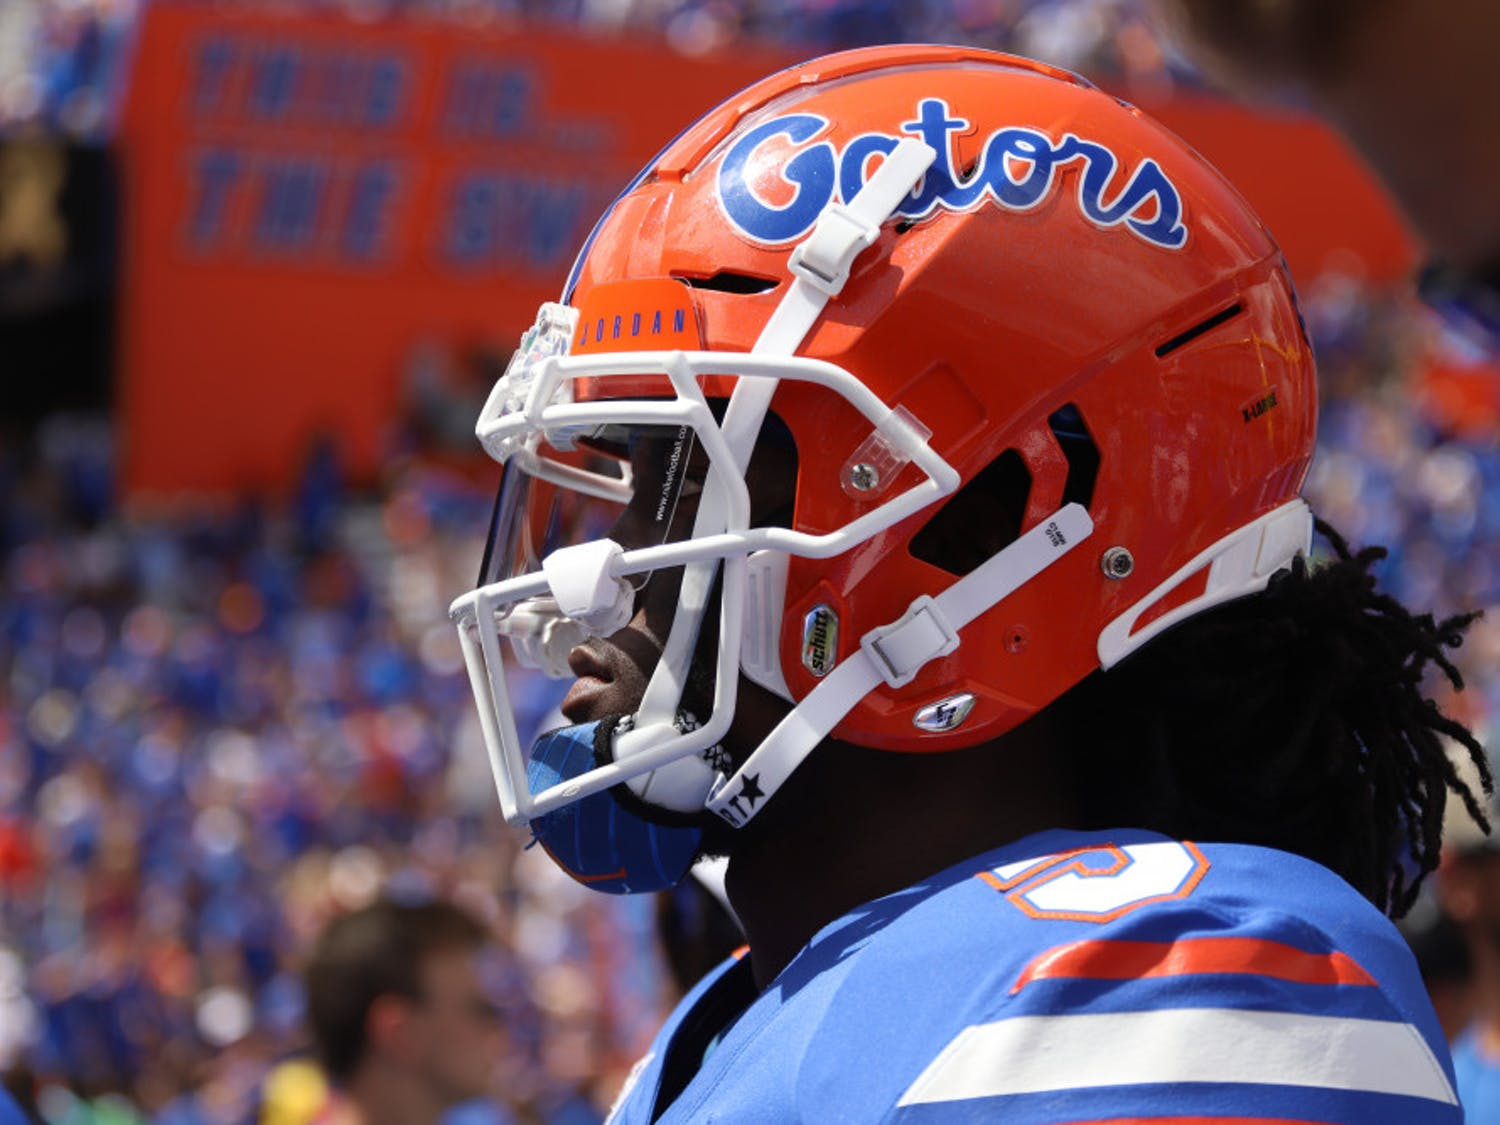 After months of waiting, wide receiver Justin Shorter will be immediately eligible to play for the Gators this season.